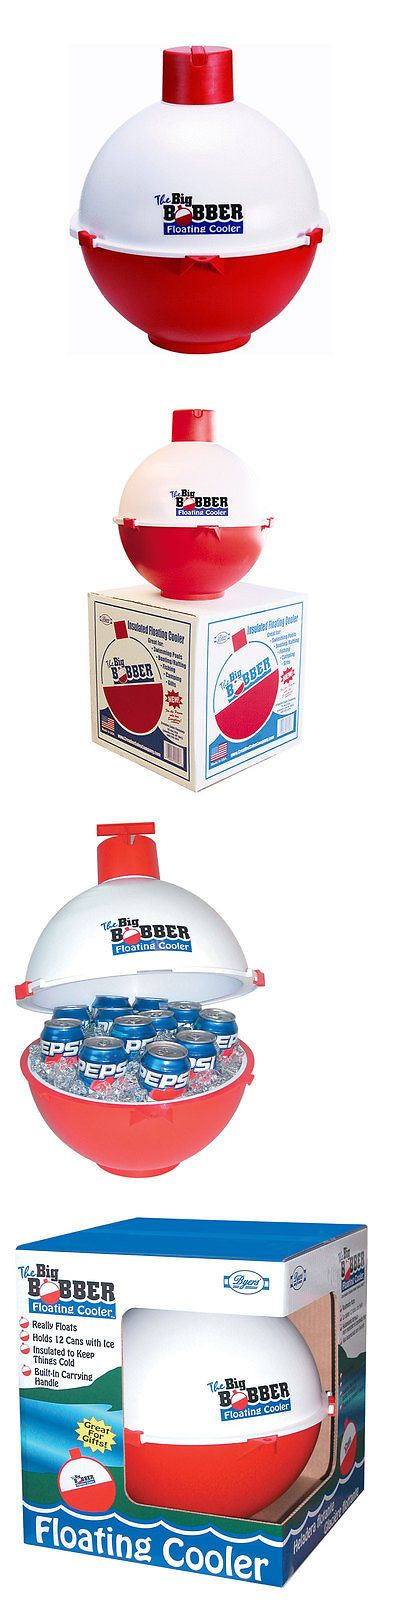 Floats and Rafts 181055: Byers The Big Bobber Floating Cooler Red White Easy To Carry 50001700 New -> BUY IT NOW ONLY: $33.14 on eBay!